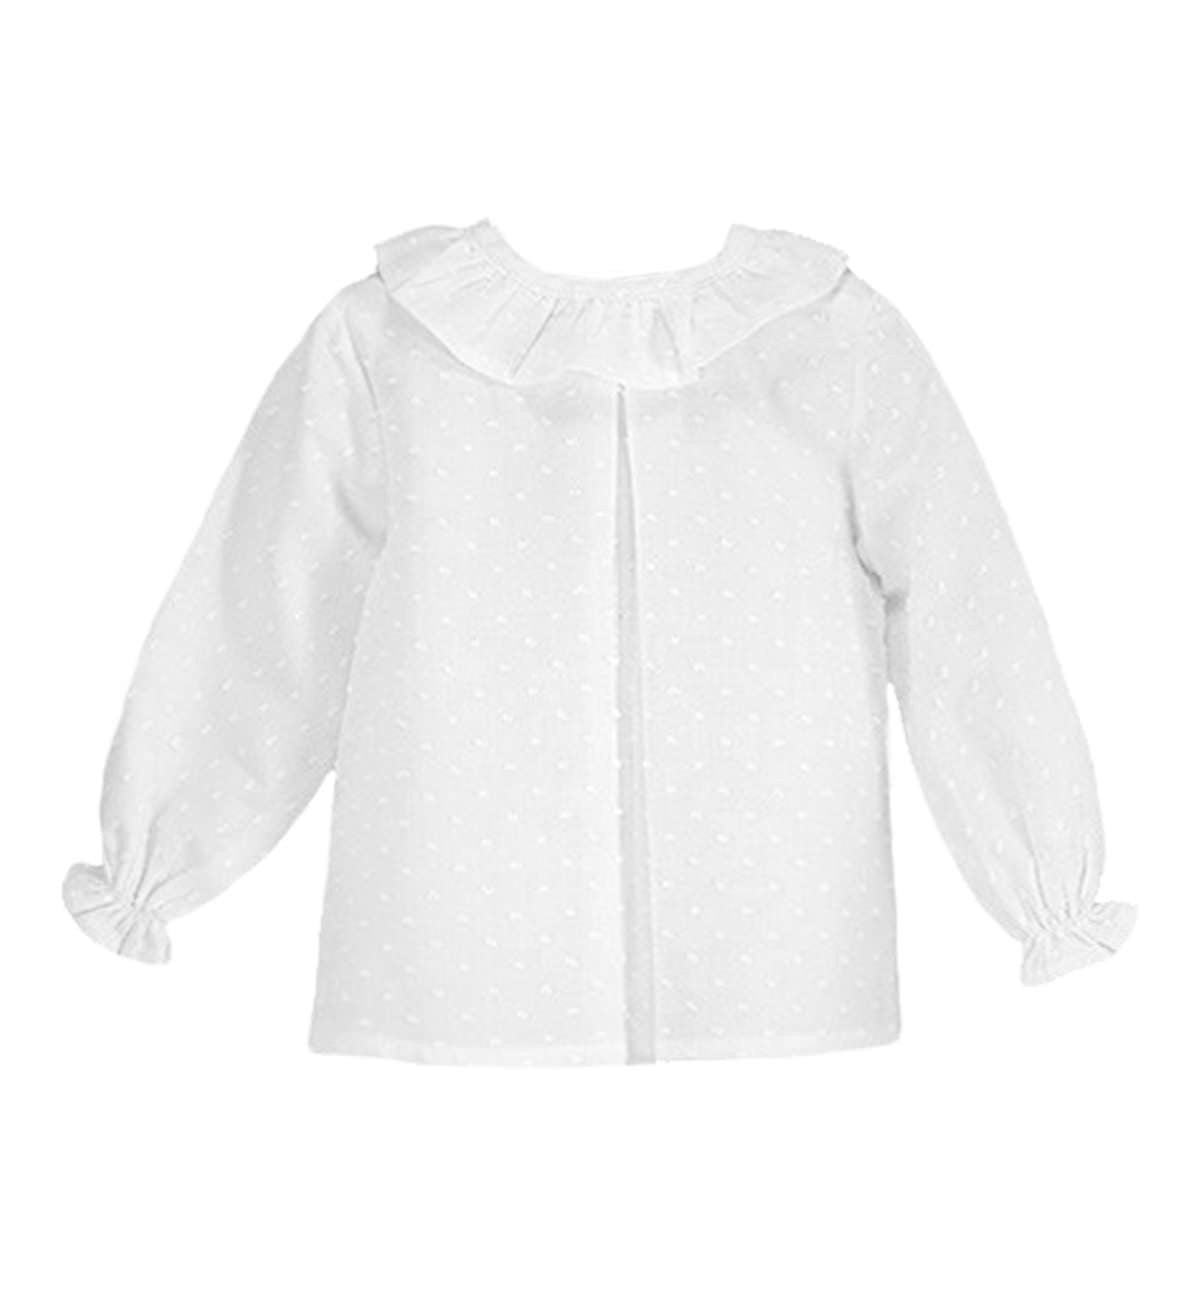 Spanish baby clothes | baby Blouse | White blouse |babymaC  - 1